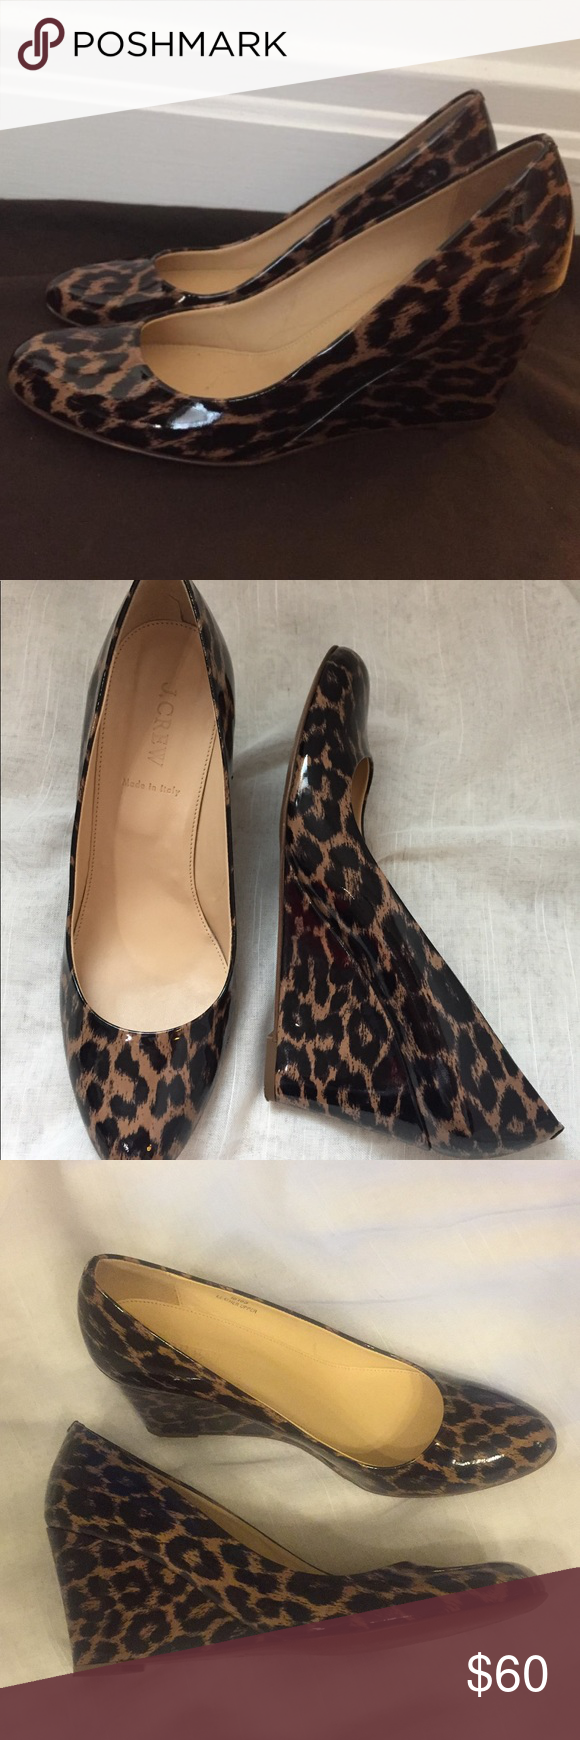 0b6fb566344 J. Crew patent leather leopard Martina wedges These shoes are ...